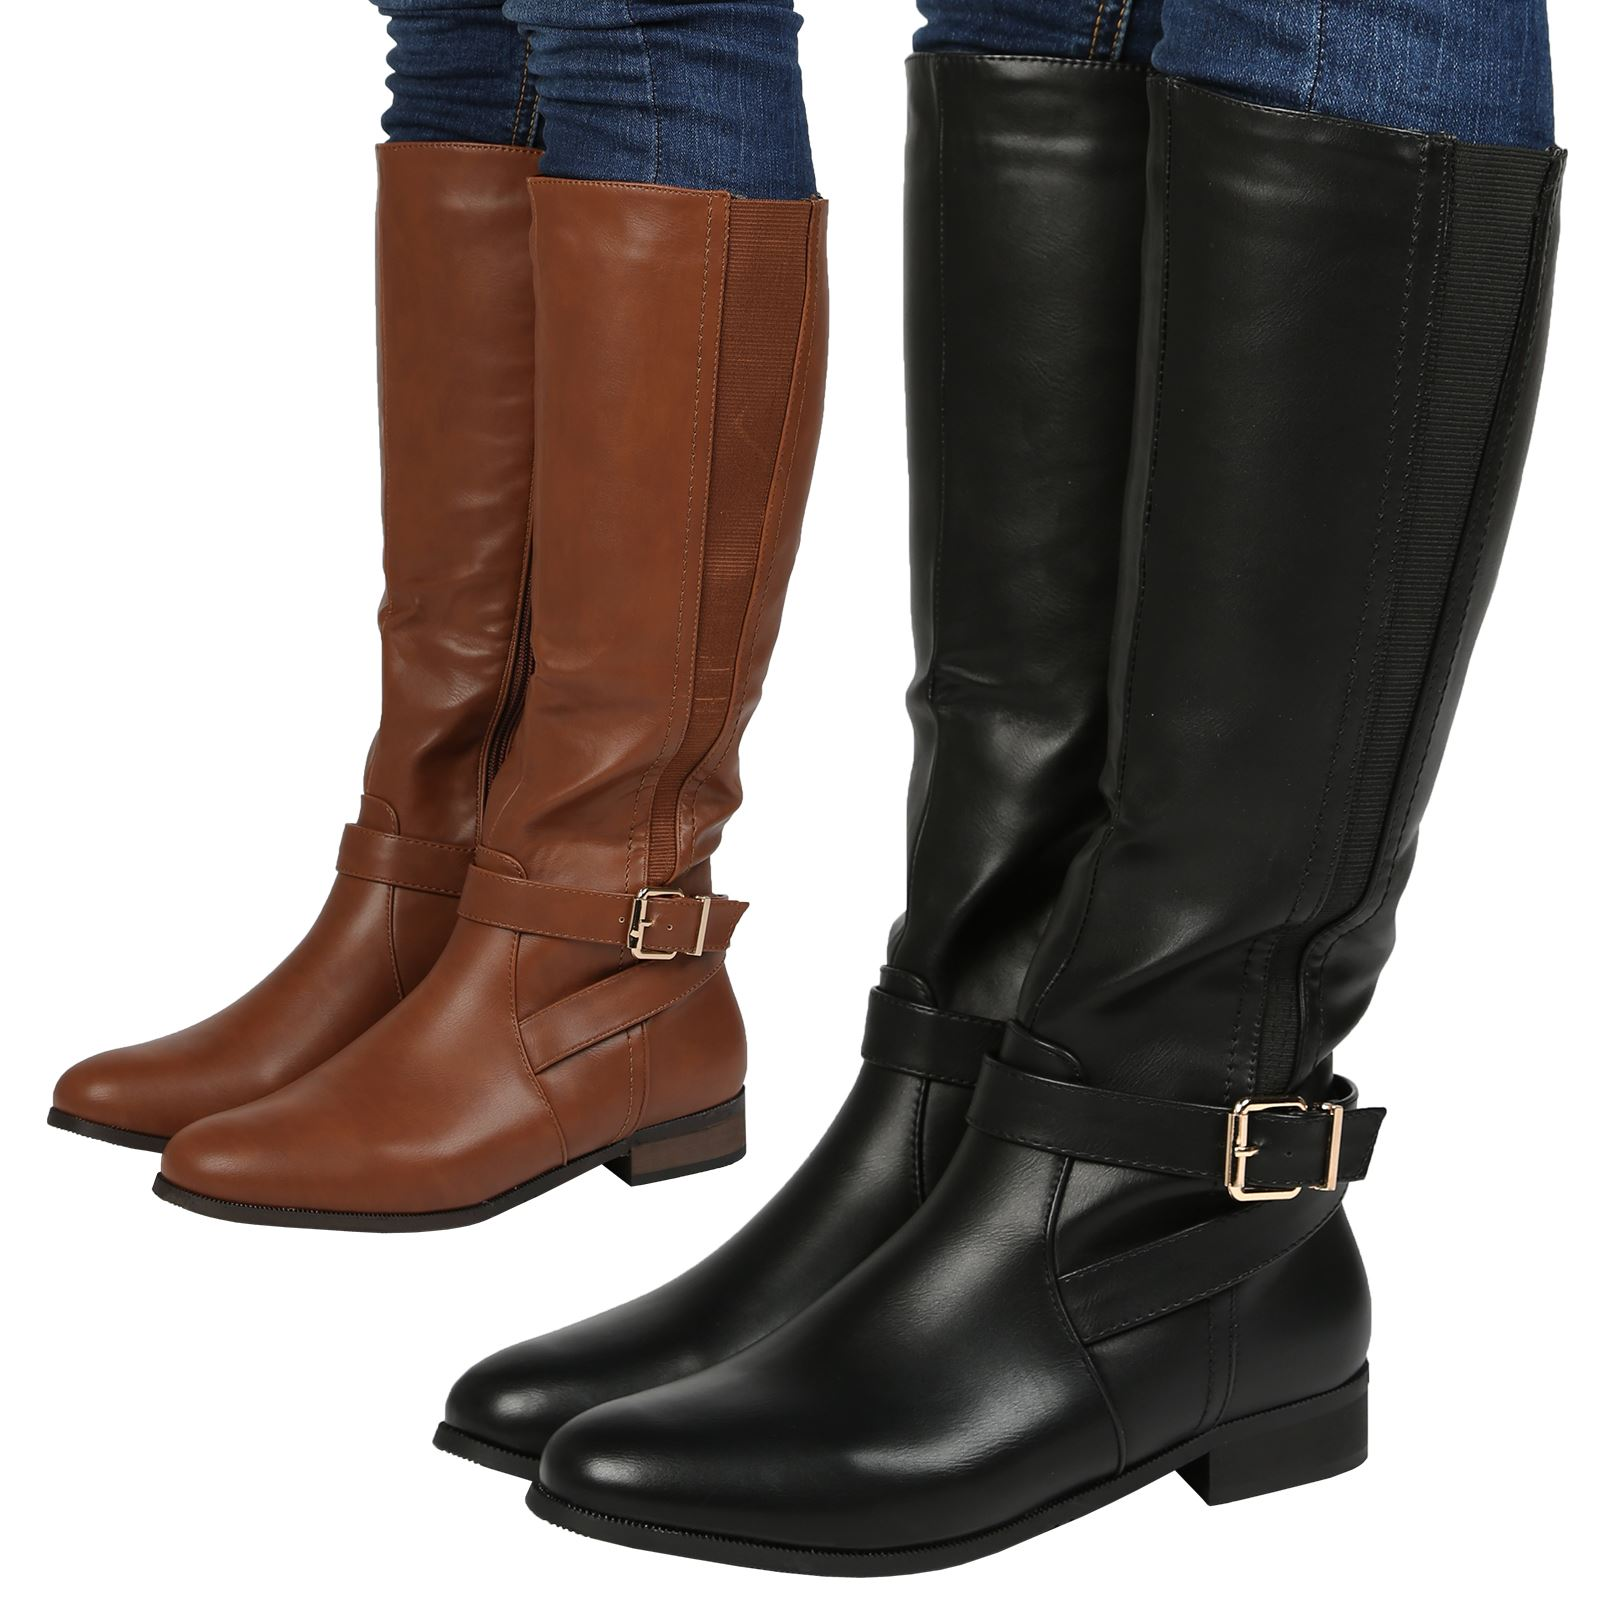 NEW WOMENS LADIES MID CALF BOOTS WINTER RIDING BUCKLE LOW